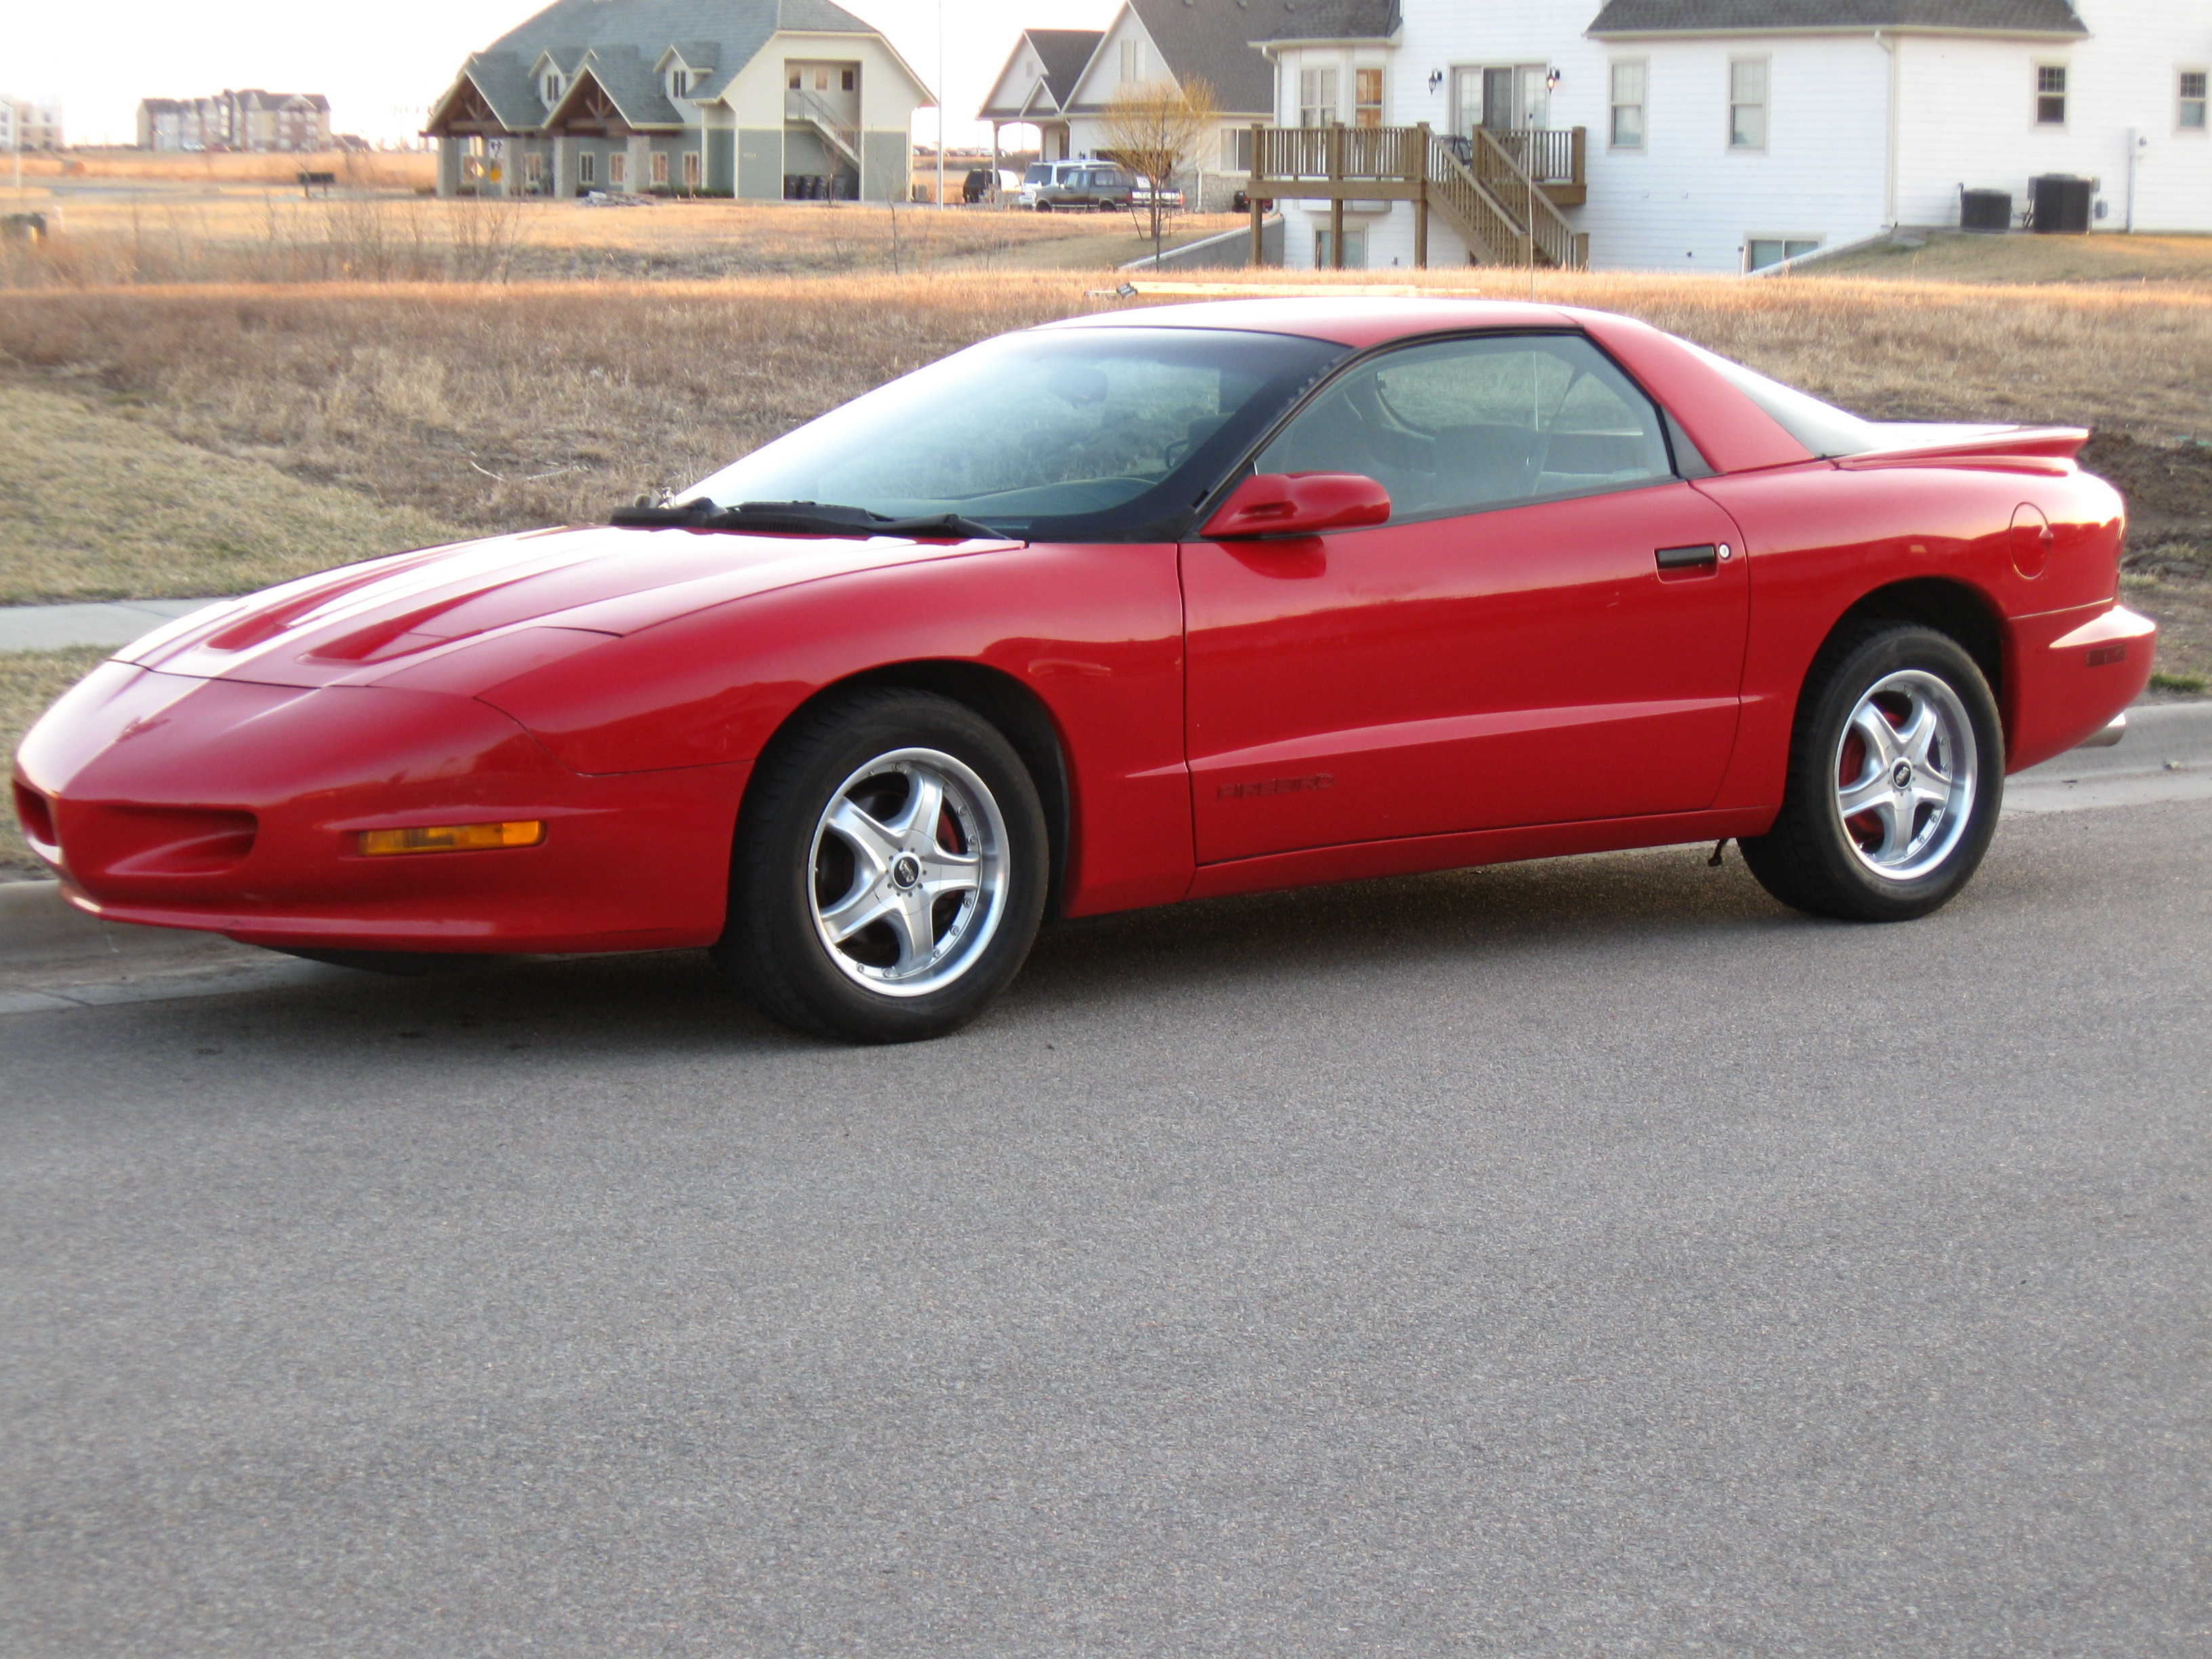 t-spoon's 1995 Pontiac Firebird